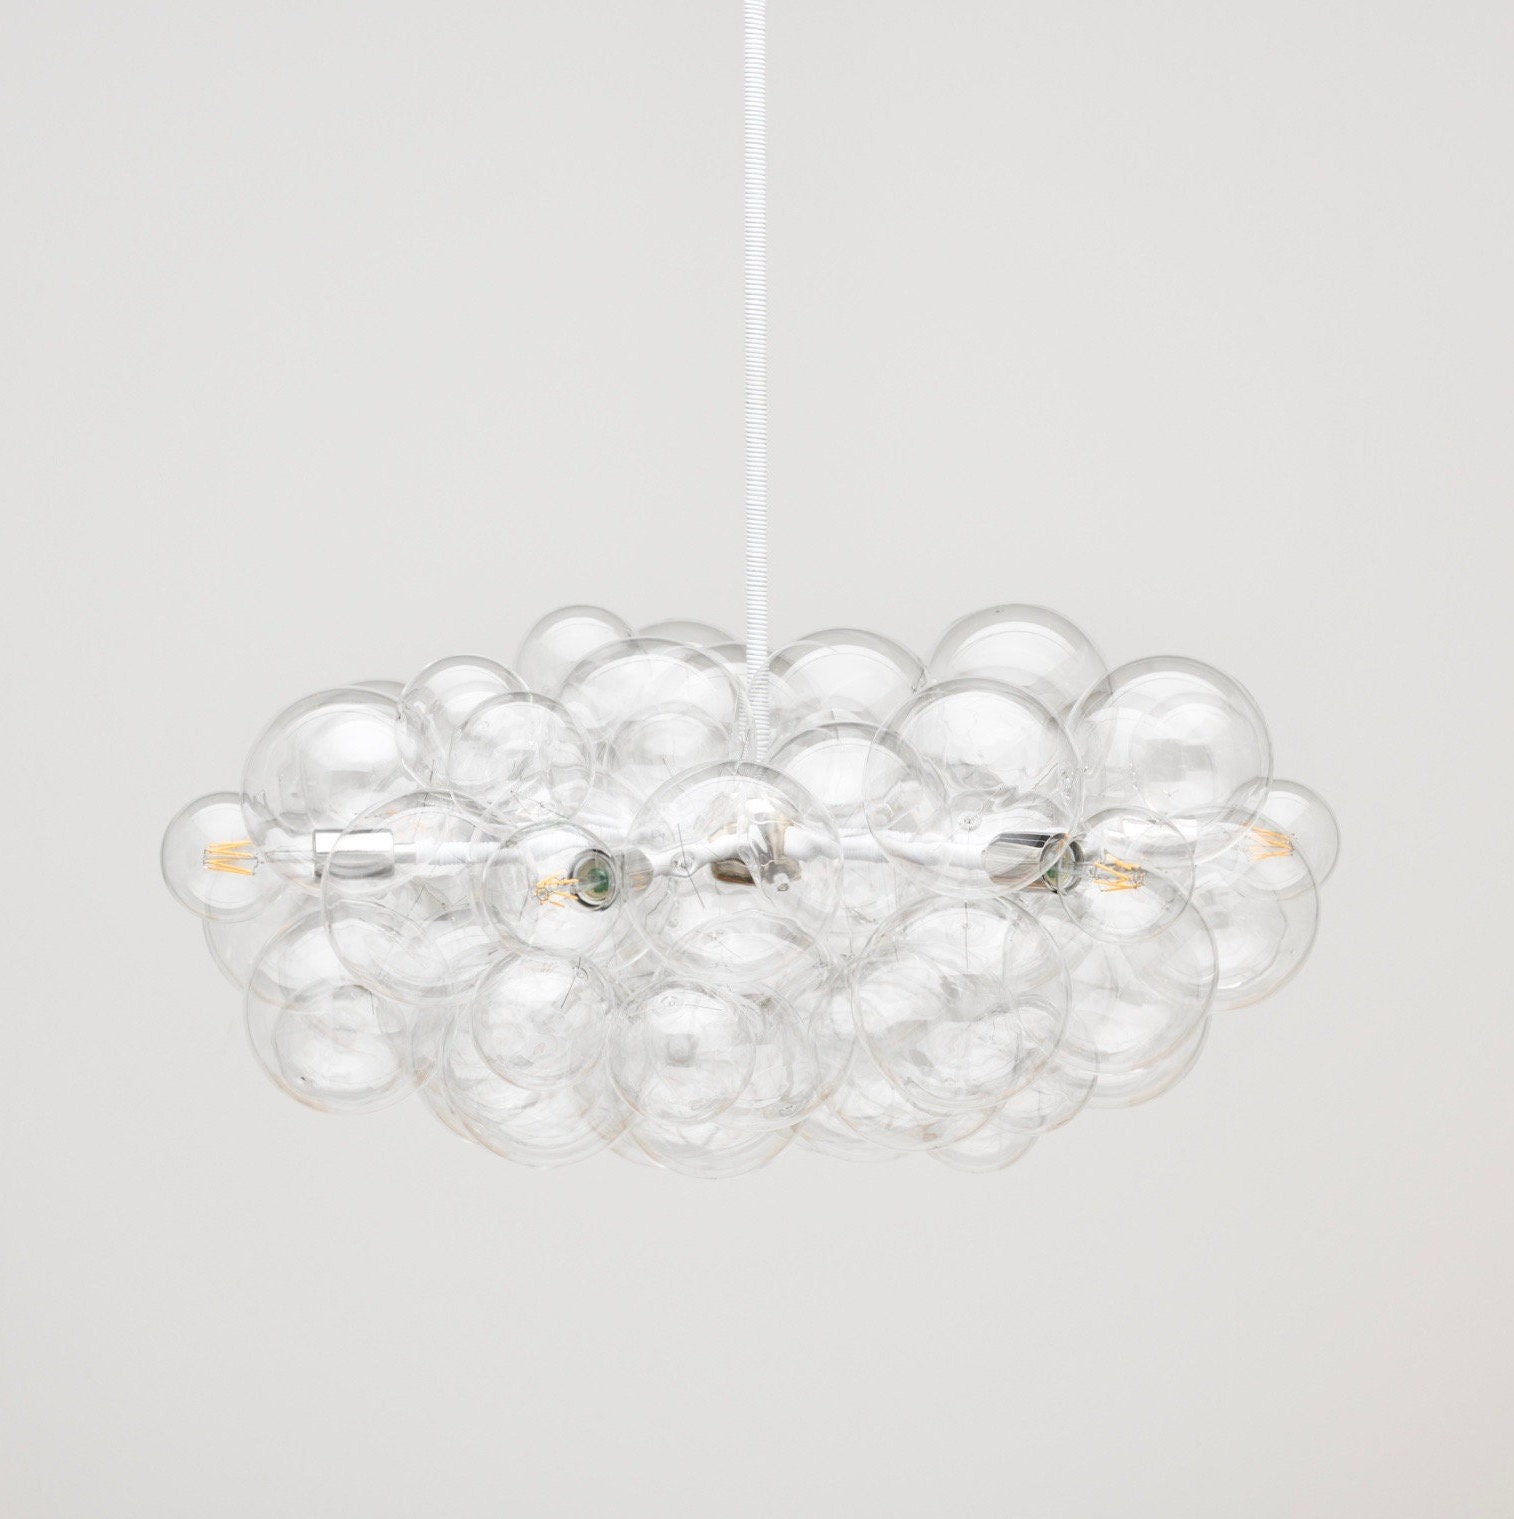 The round branch bubble chandelier 32 diameter • led lighting • bubble light • modern lighting • custom size and finish options available